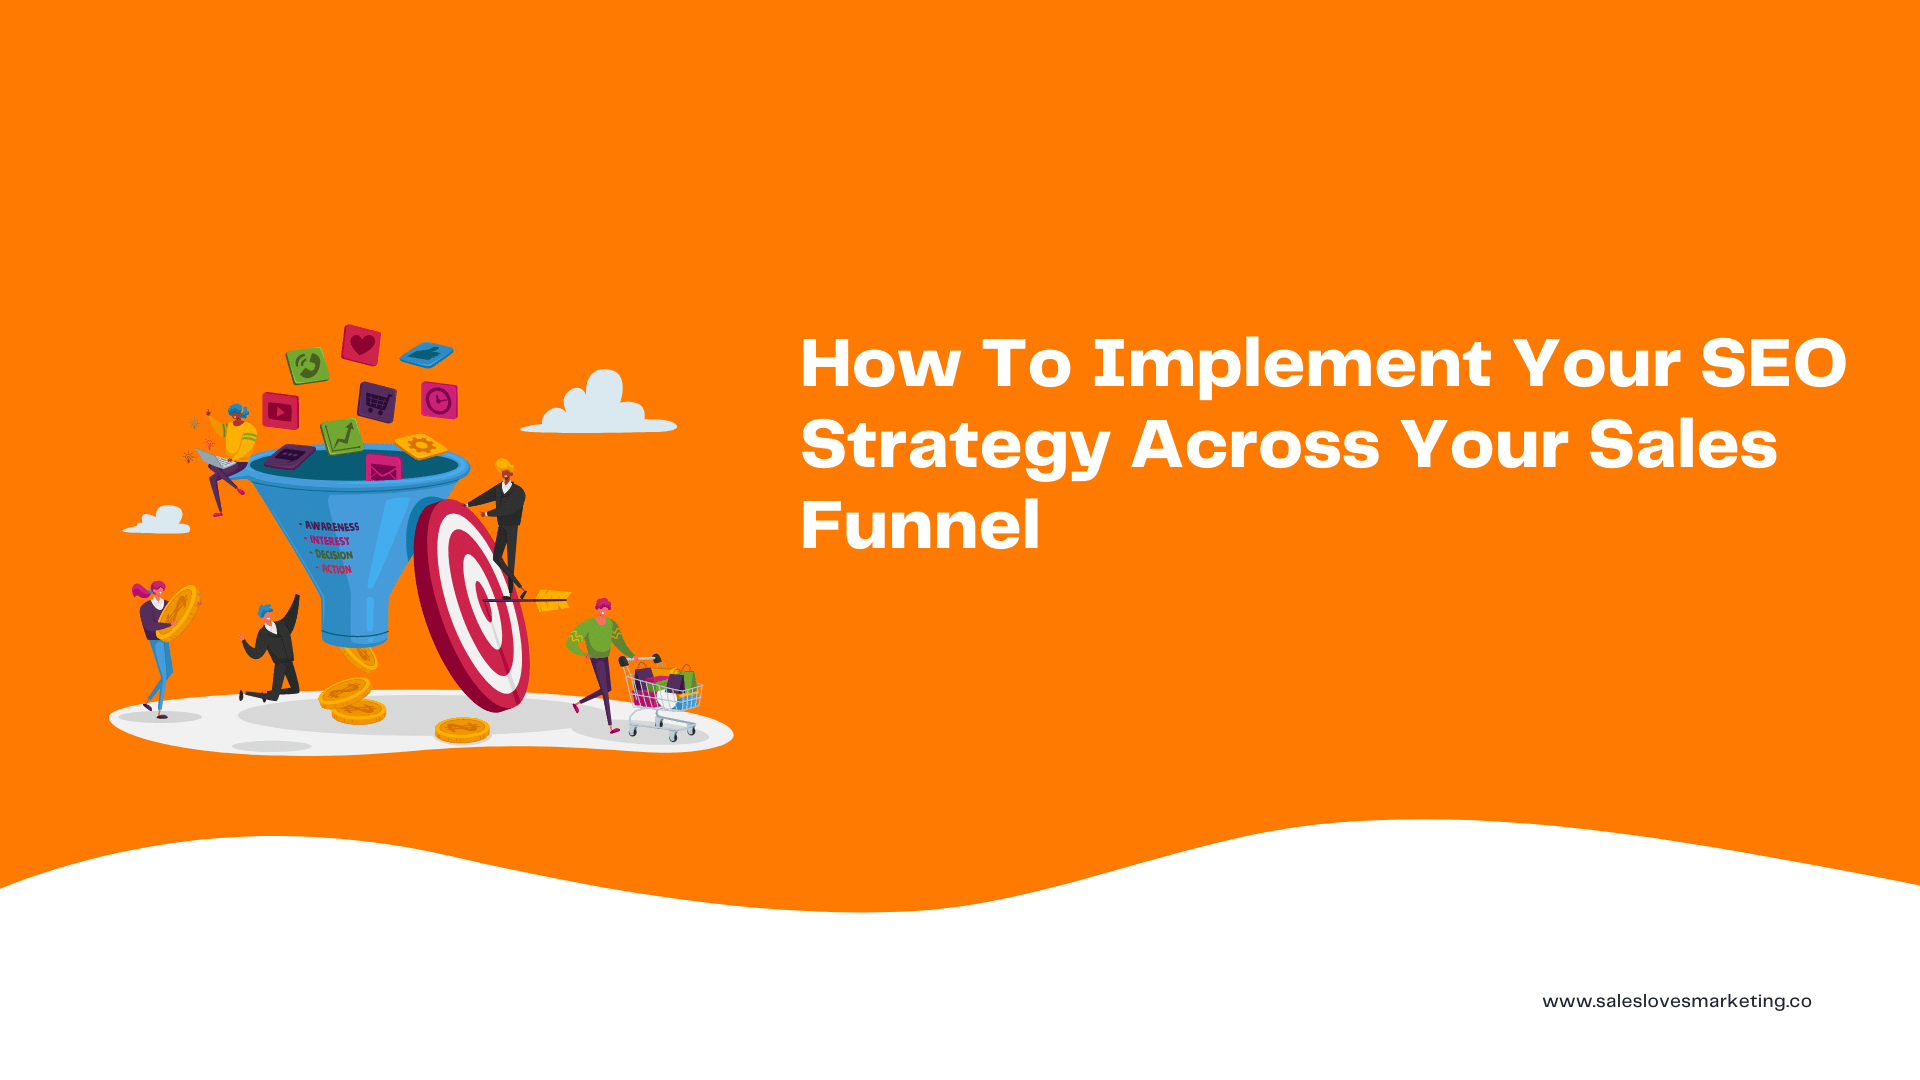 How To Implement Your SEO Strategy Across Your Sales Funnel